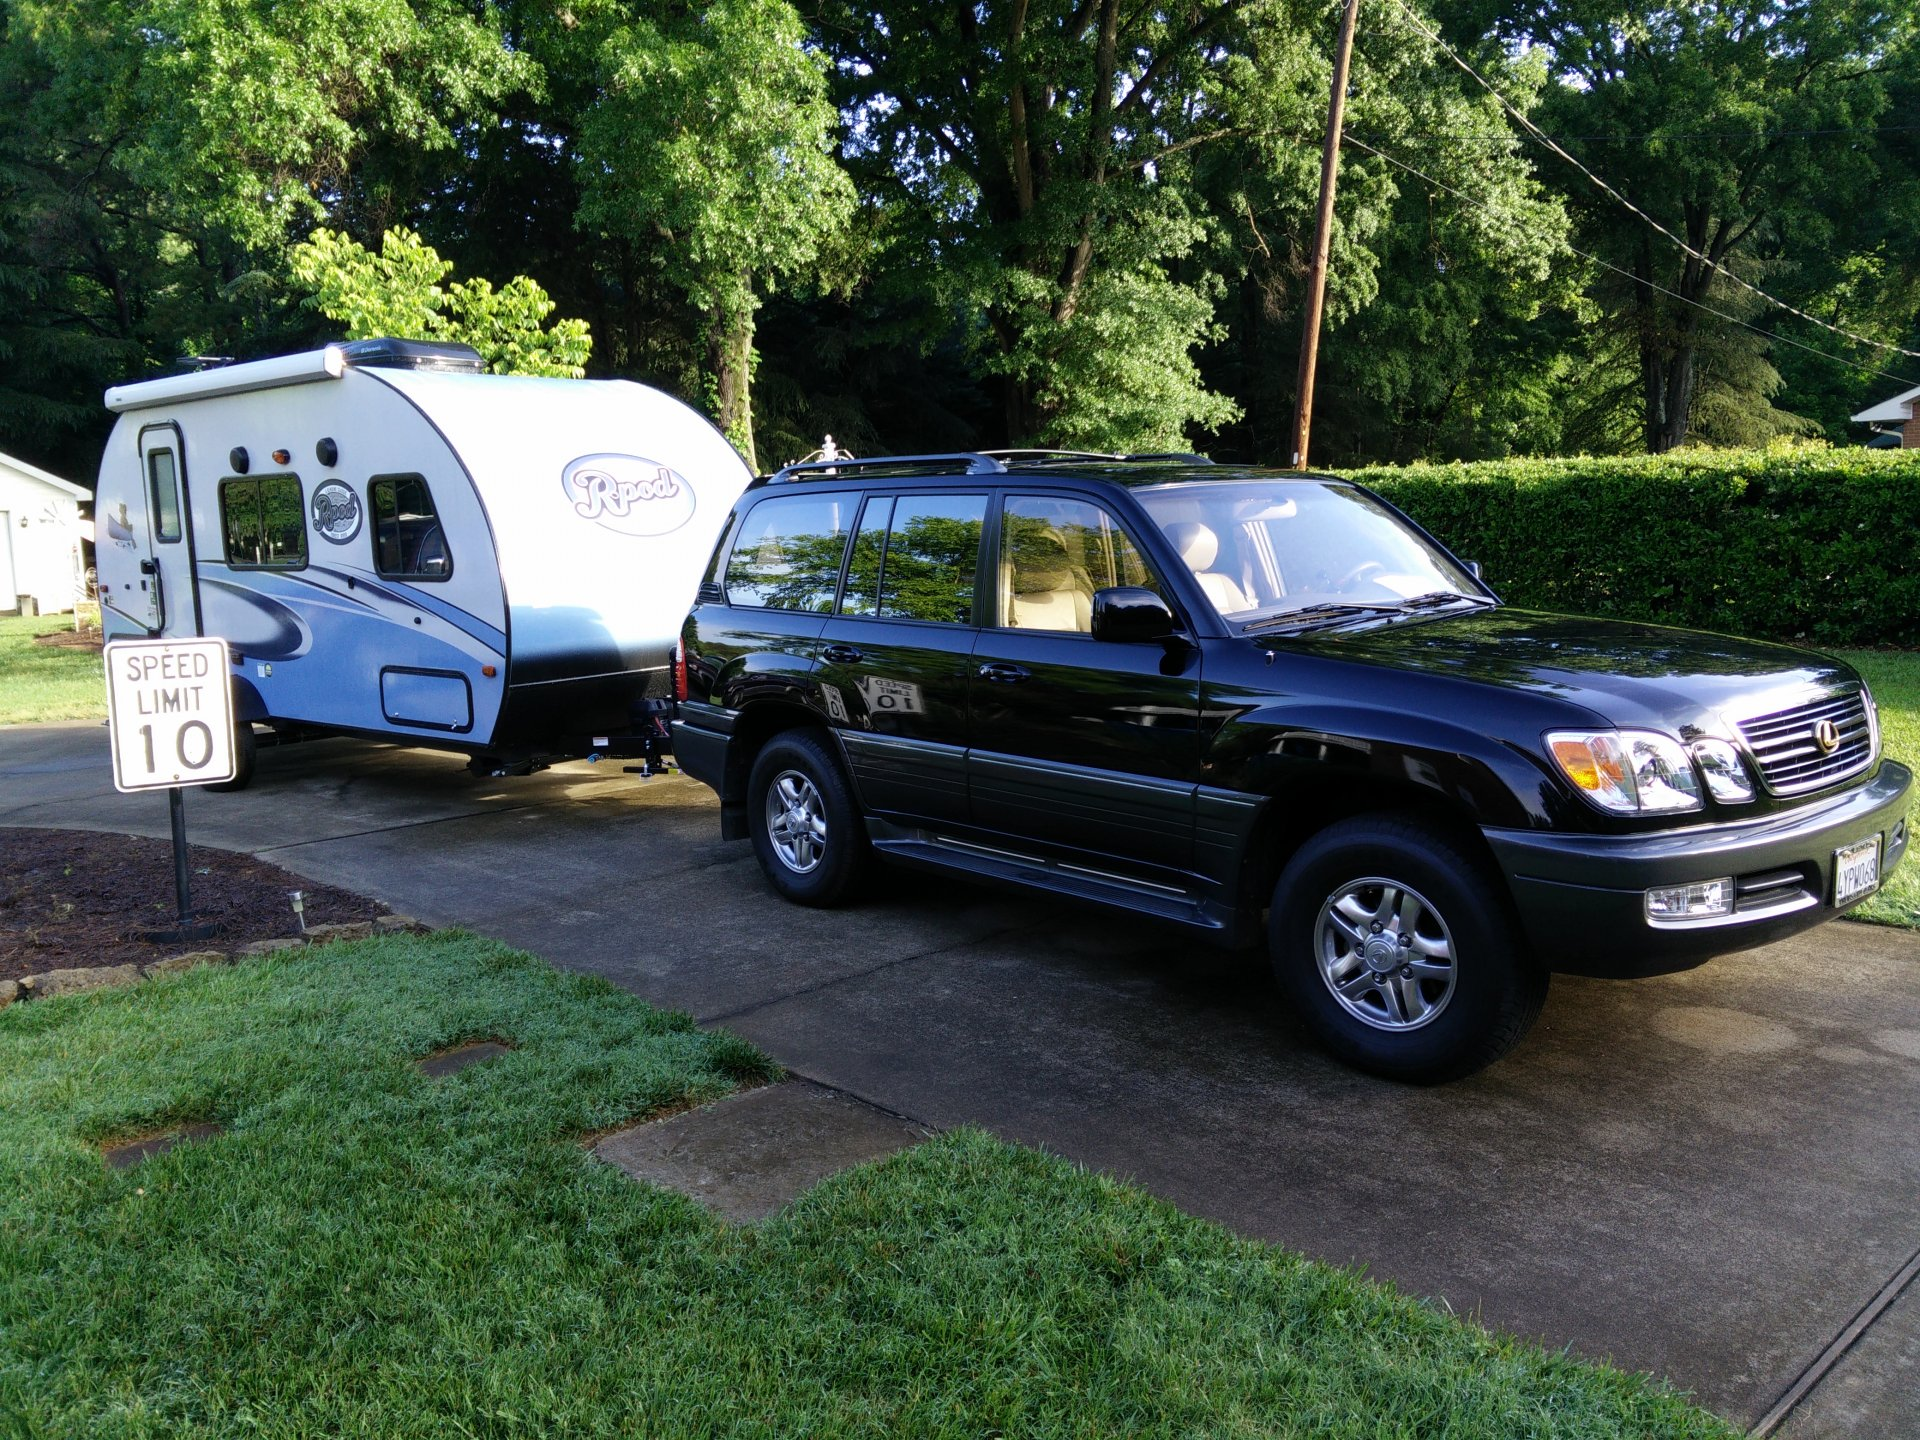 Toyota Sienna 2010-2018 Owners Manual: Trailer towing(with towing package)